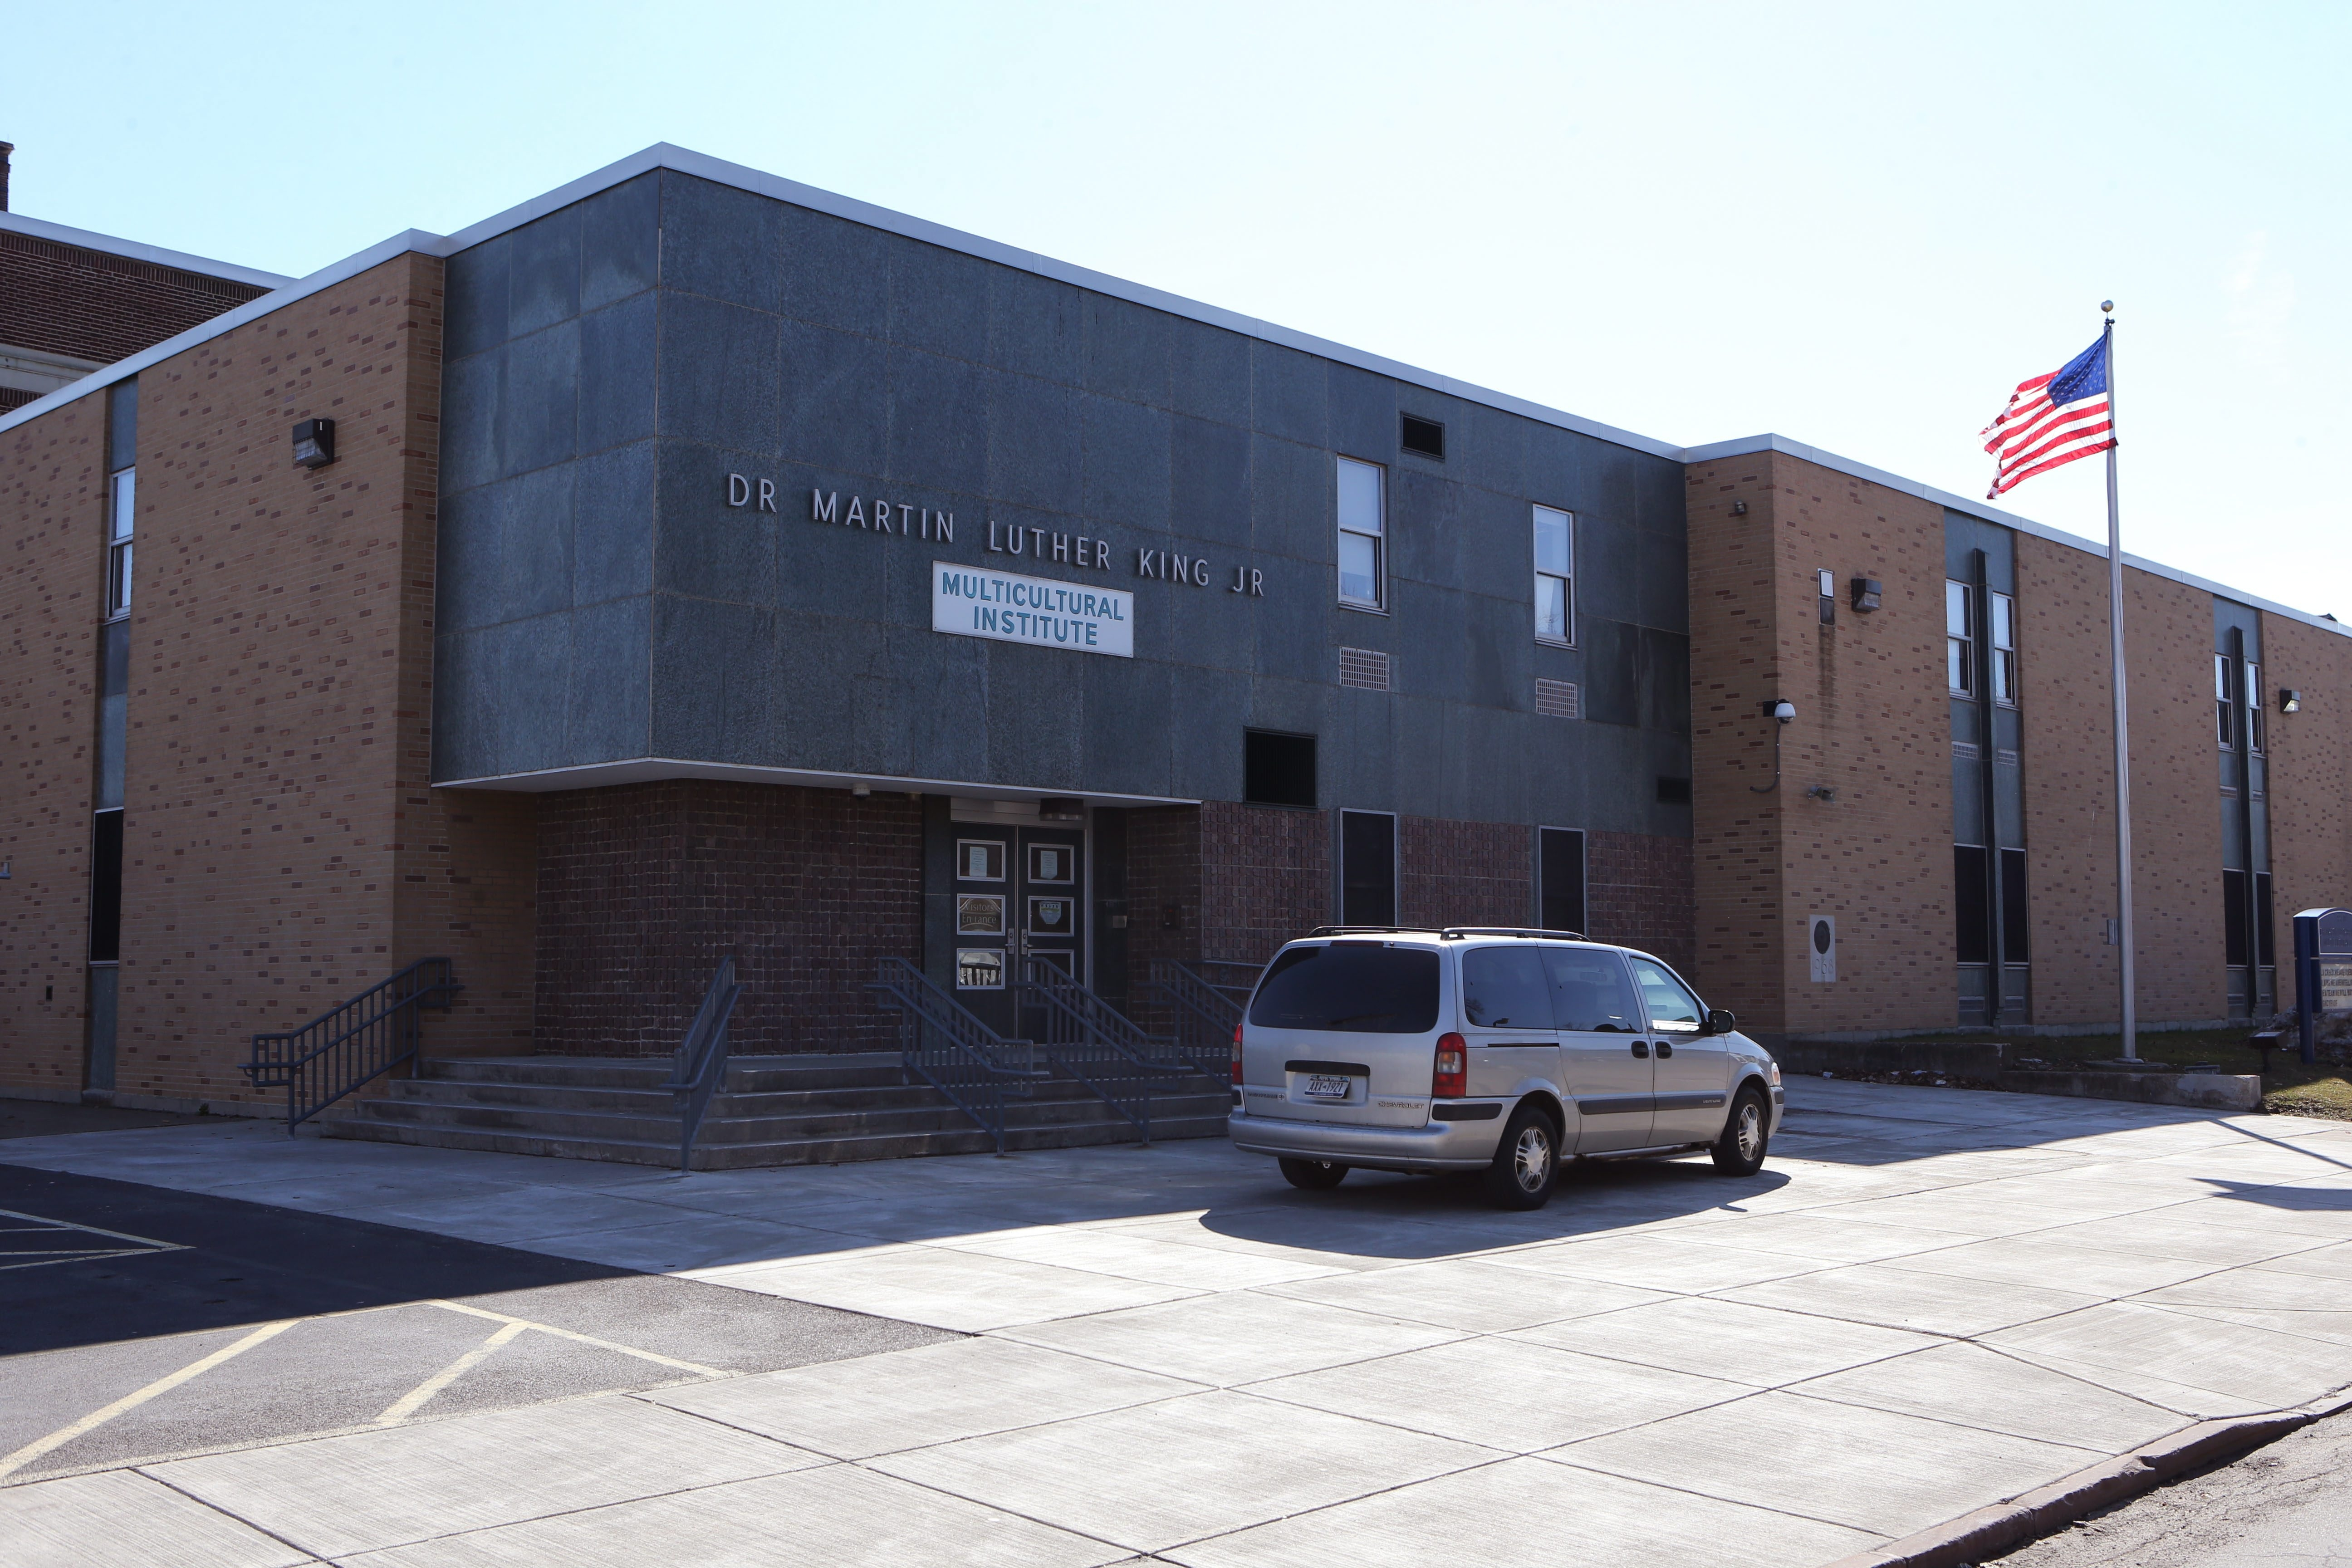 The Buffalo School District won a highly competitive federal grant to turn Martin Luther King Multicultural Institute into a school specializing in STEM —  science, technology, engineering and math. (Charles Lewis/Buffalo News)